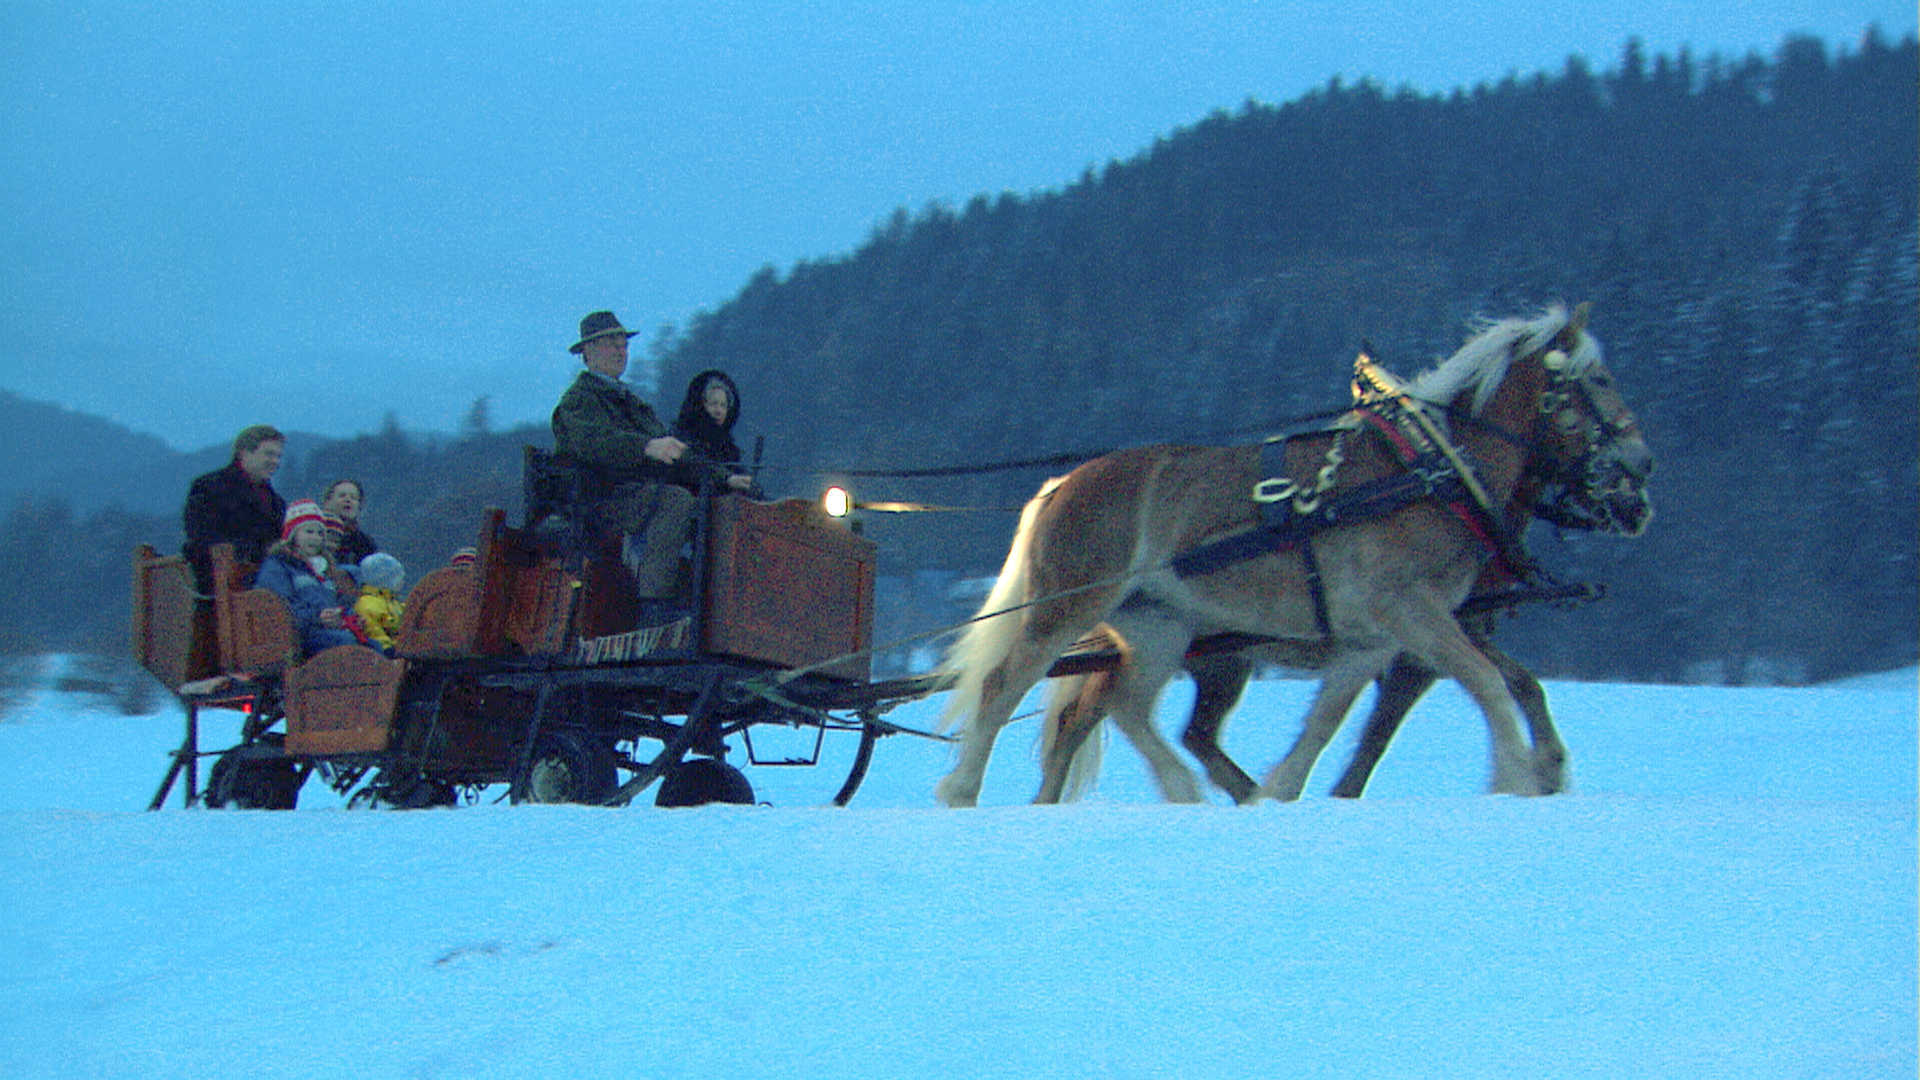 Sleighride at dusk in the Alps